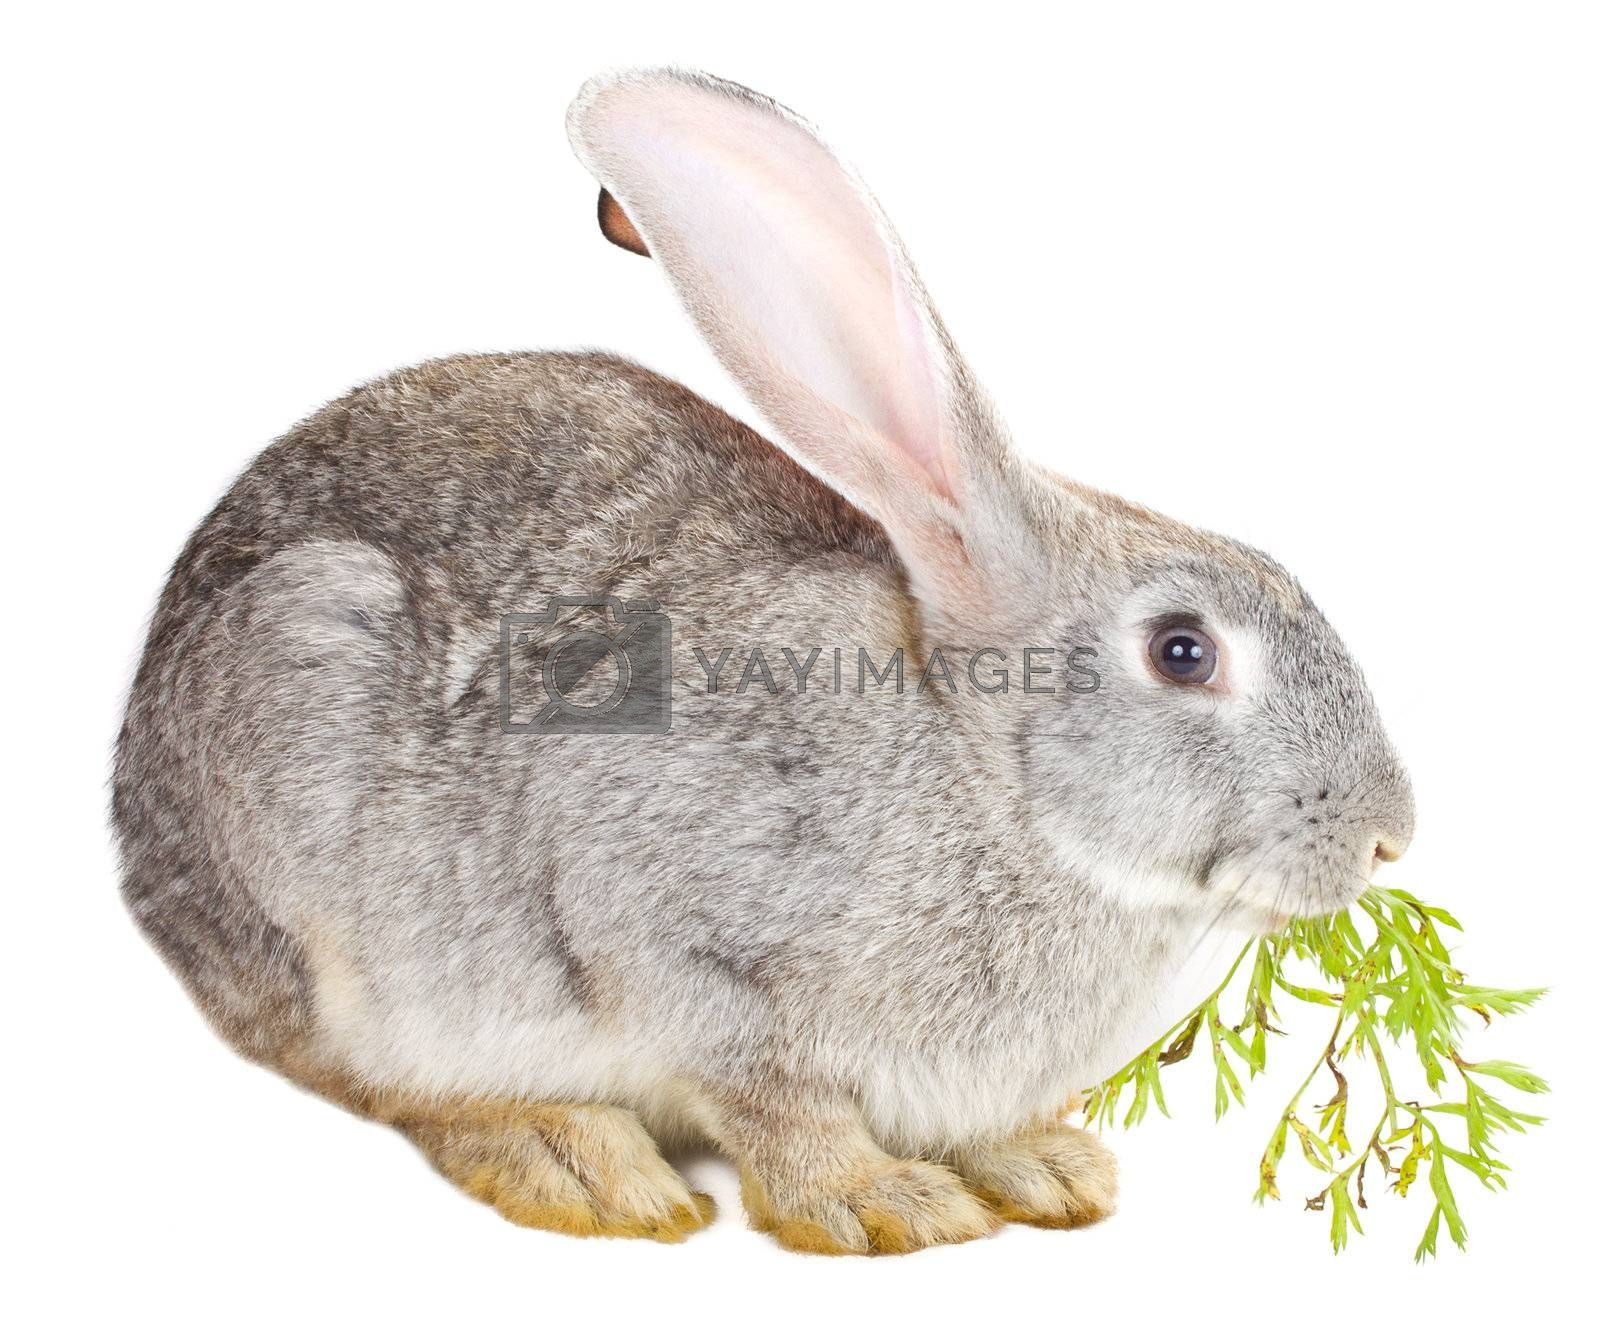 close-up gray rabbit eating carrot leaf, isolated on white